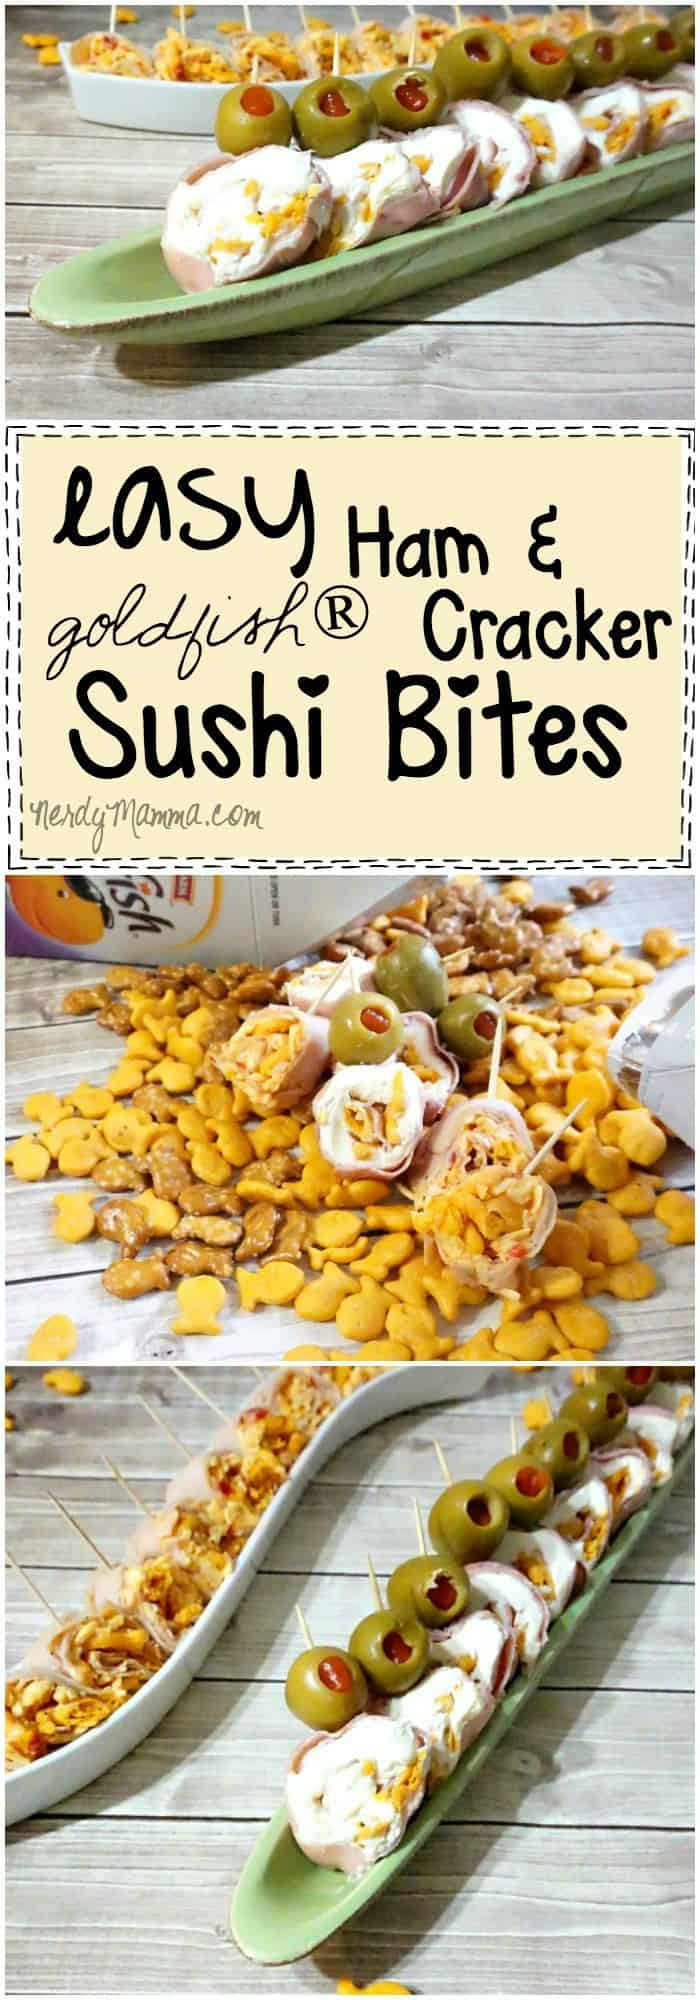 I love this recipe for Easy Ham and Goldfish® Cracker Sushi Bites...so cute! And the kids will just love 'em. I know I do.